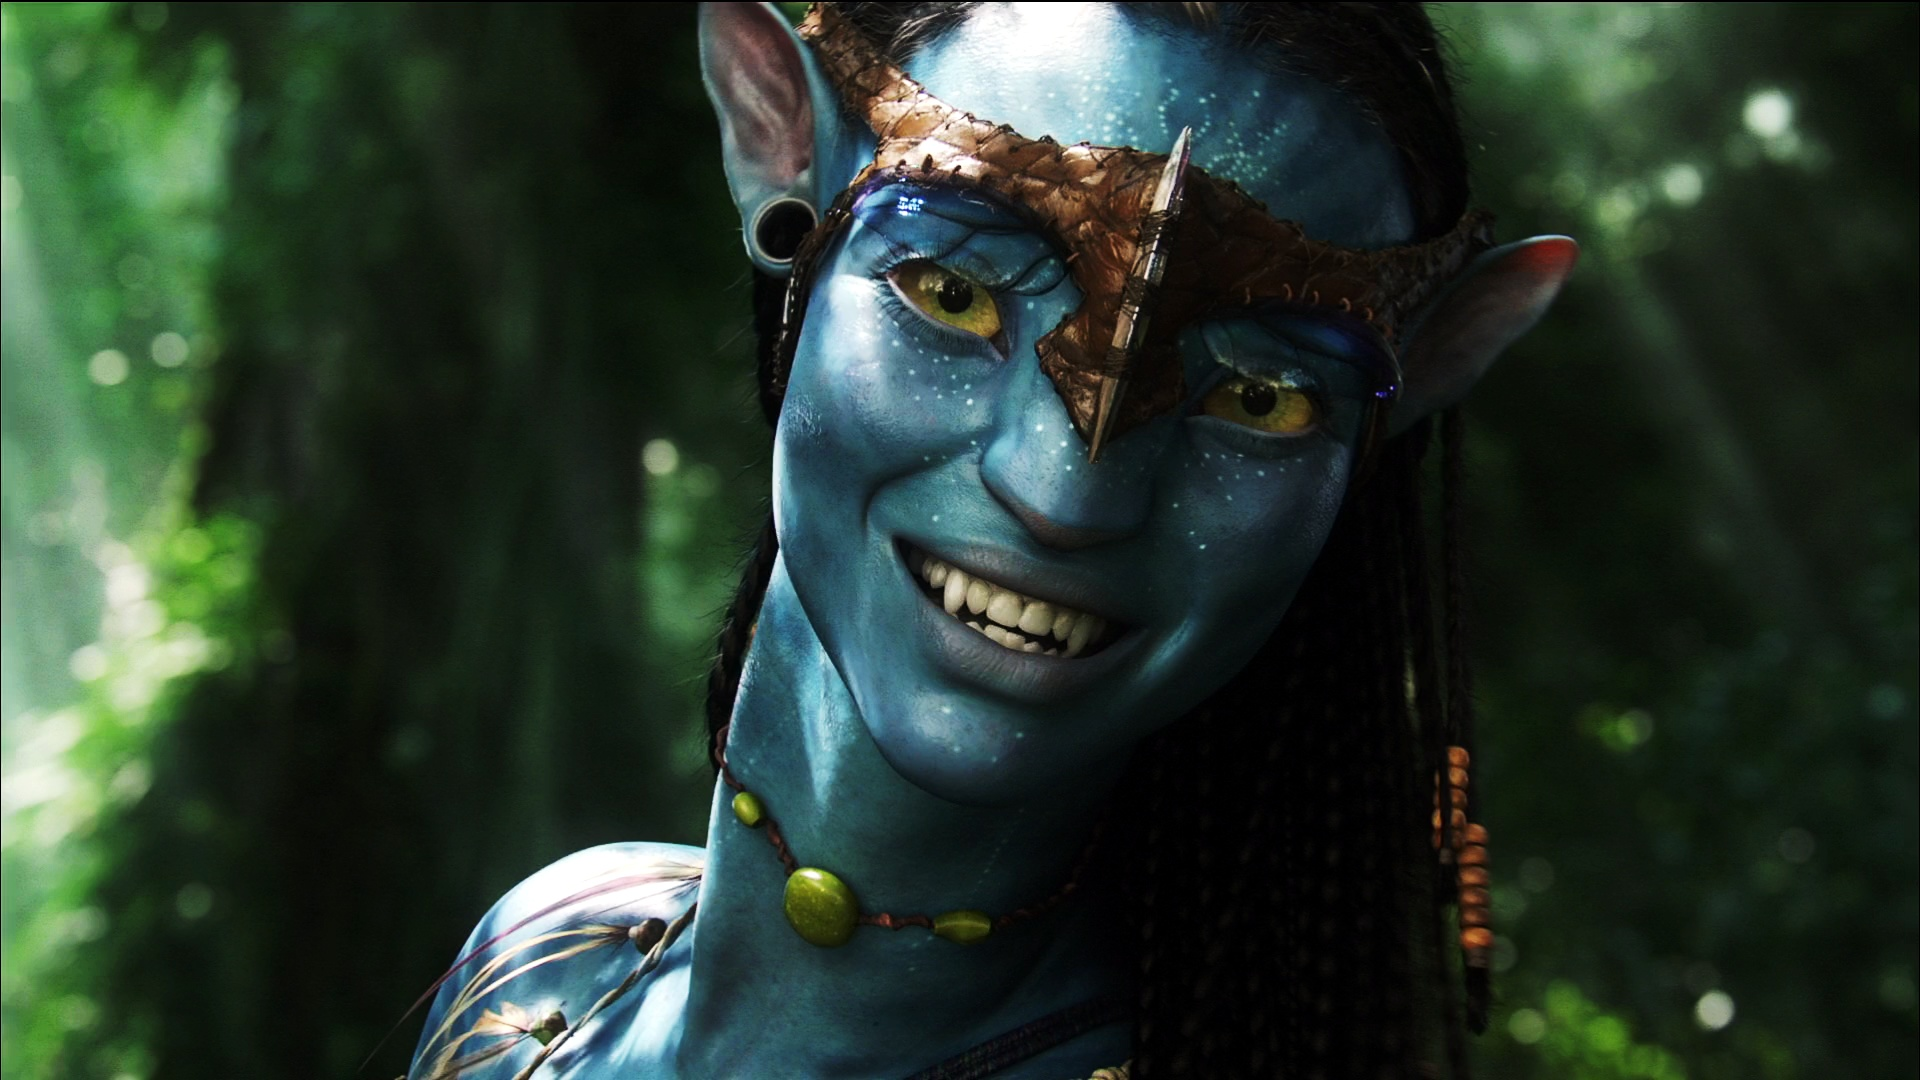 A frame from Avatar (2009) featuring a close up of Neytiri